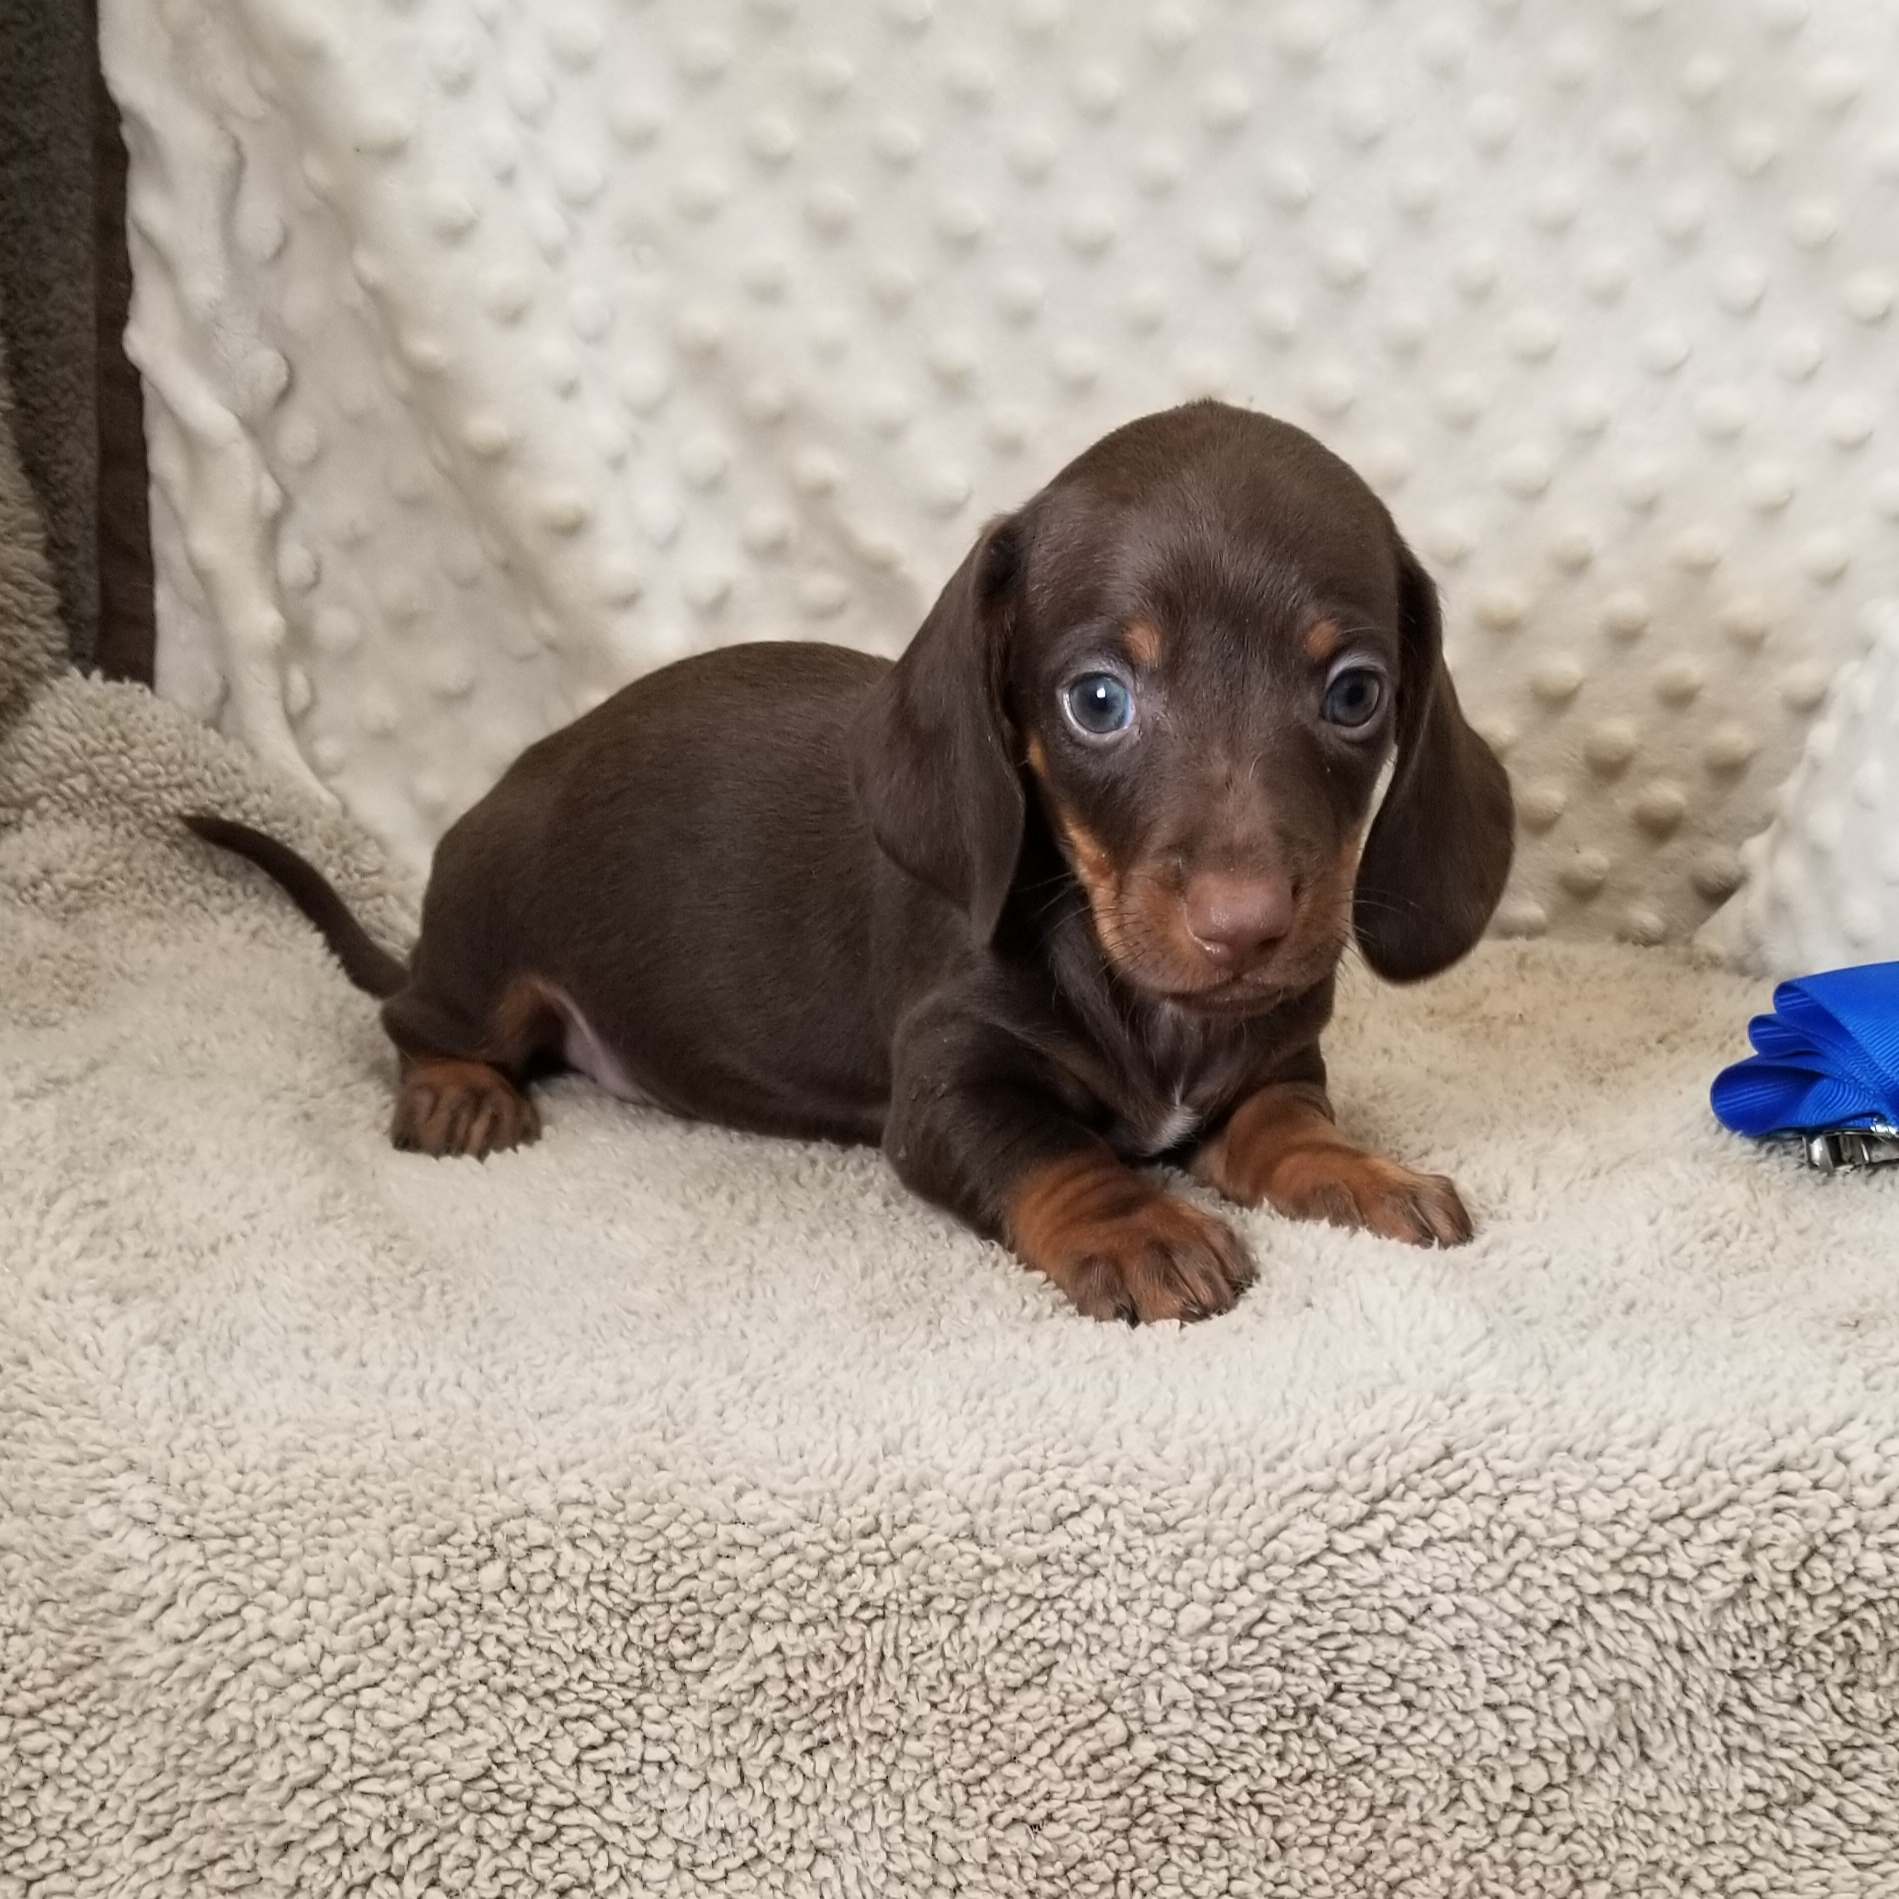 CKC Smooth Chocolate & Tan Miniature Dachshunds,  born: 8/28/2020, $1500